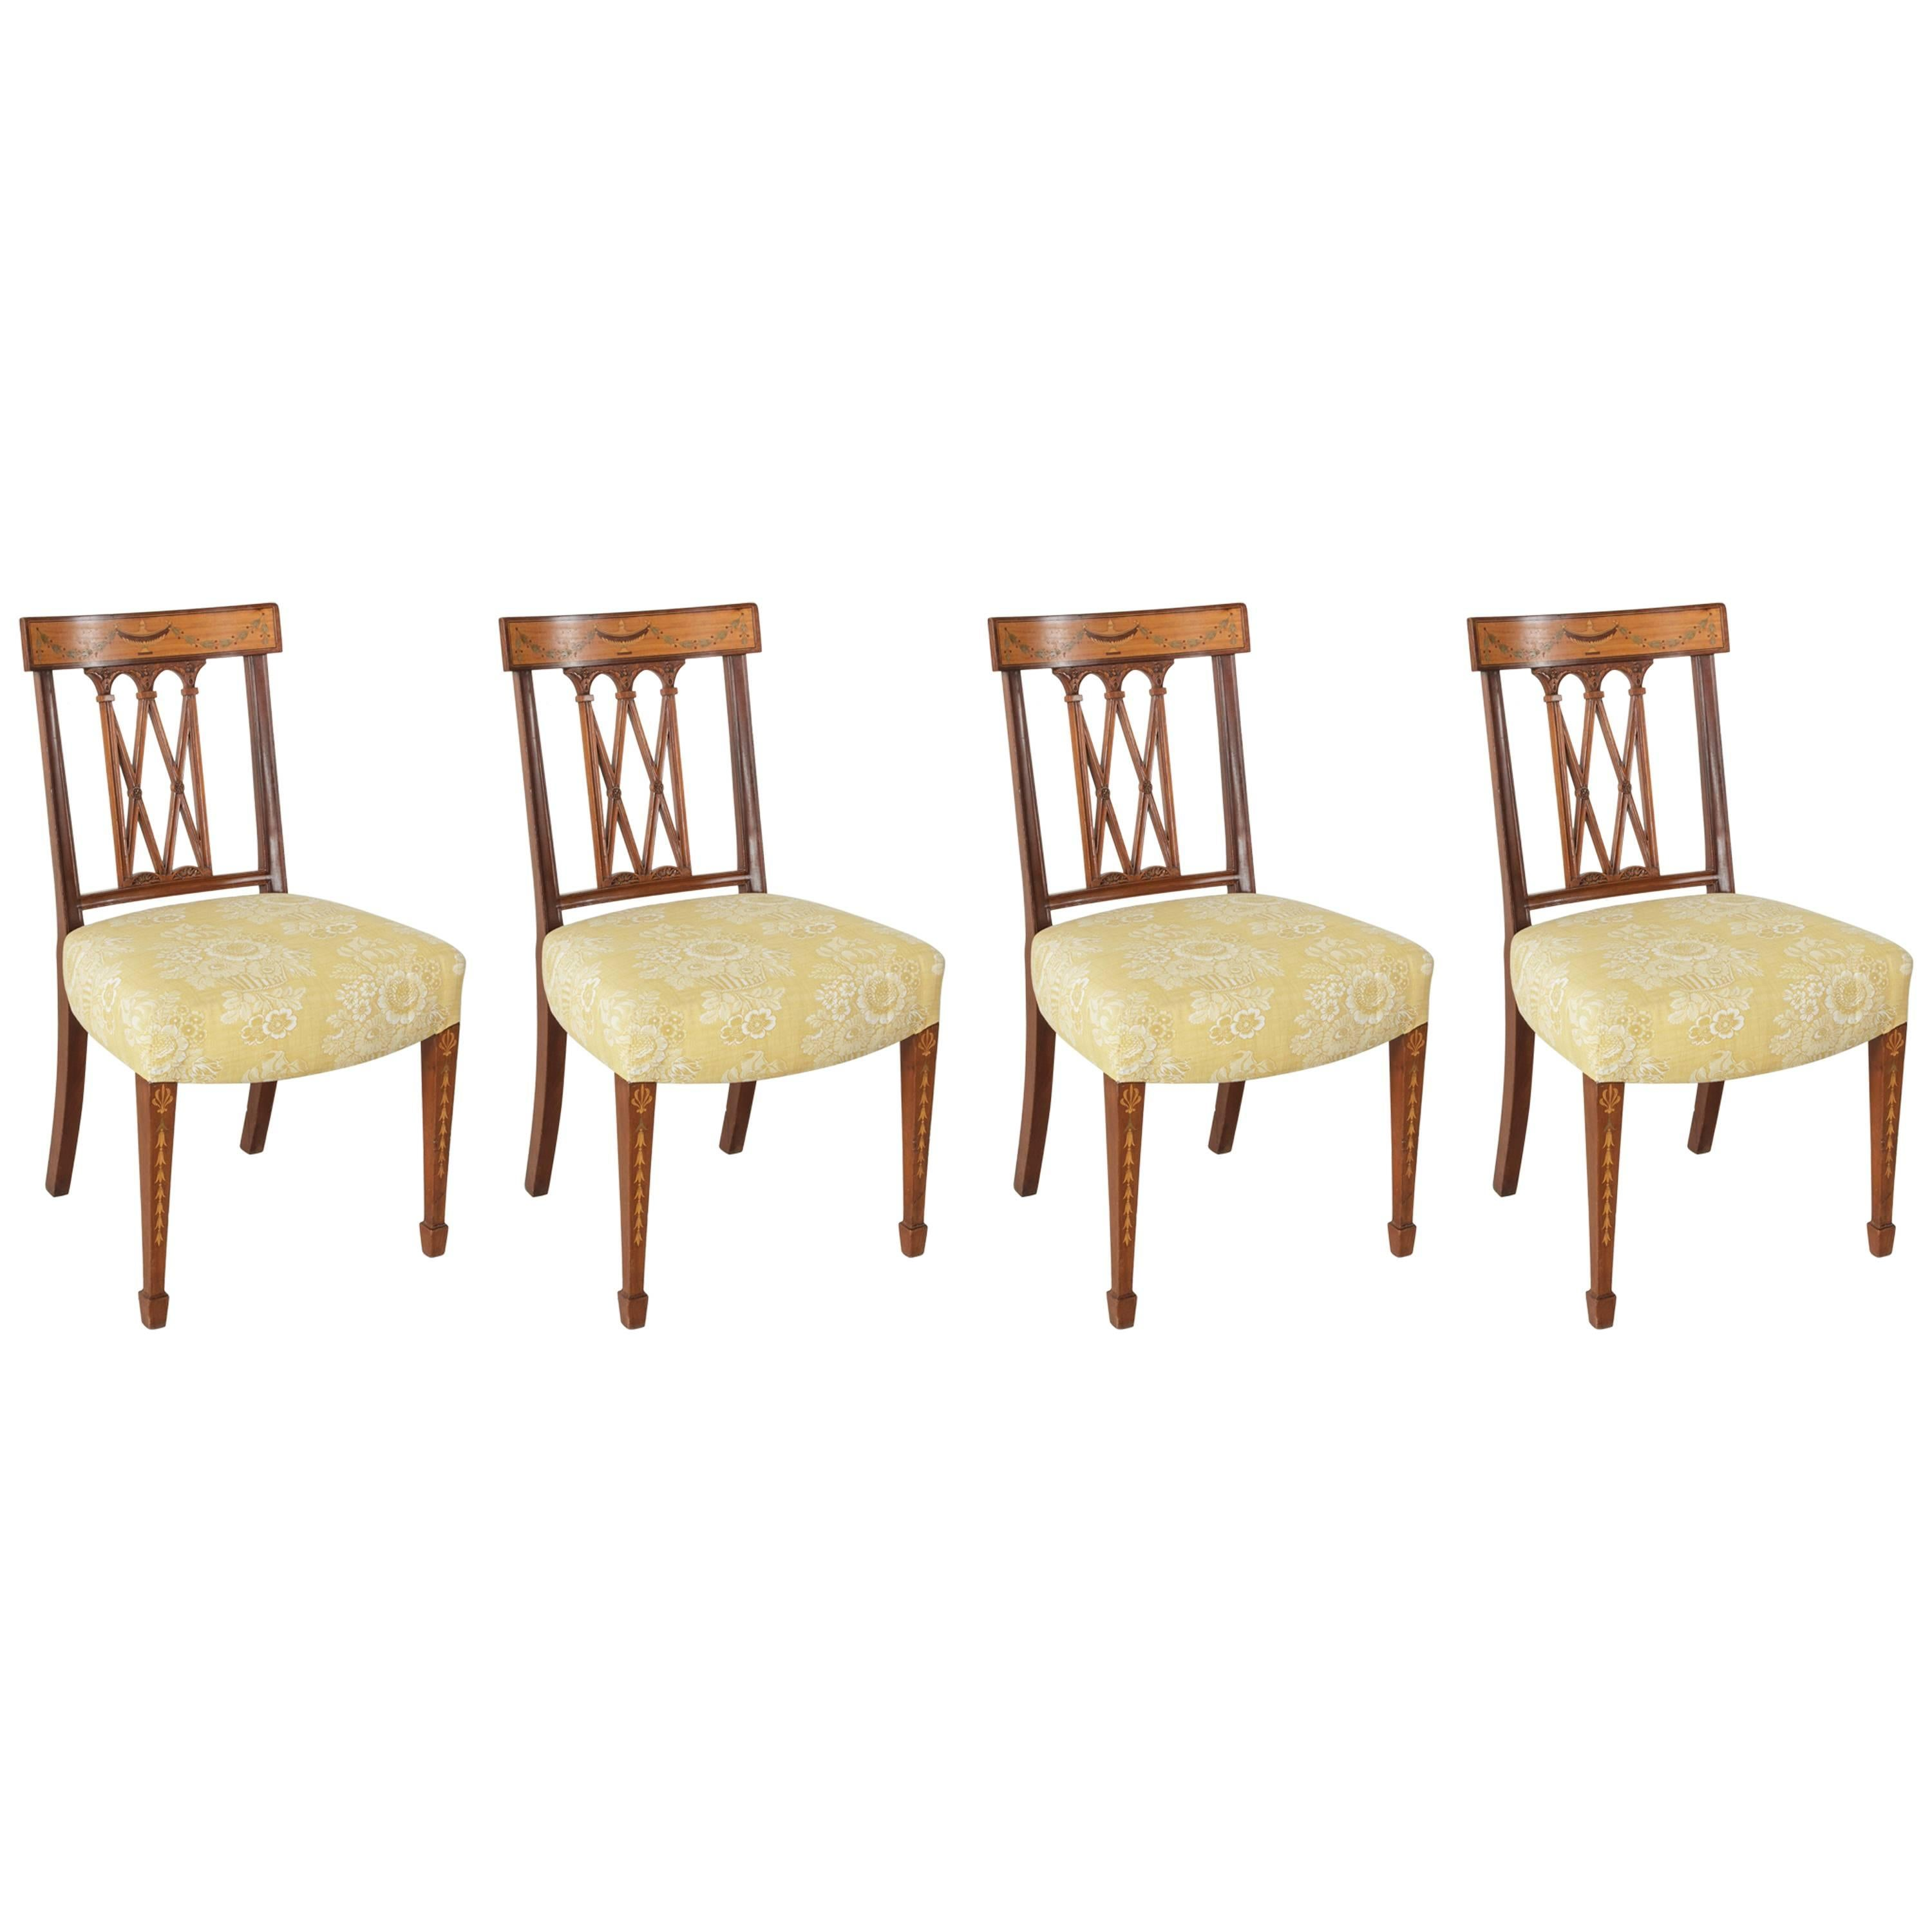 Set of Four 19th Century Italian Marquetry Walnut Side Chairs Dining Chairs